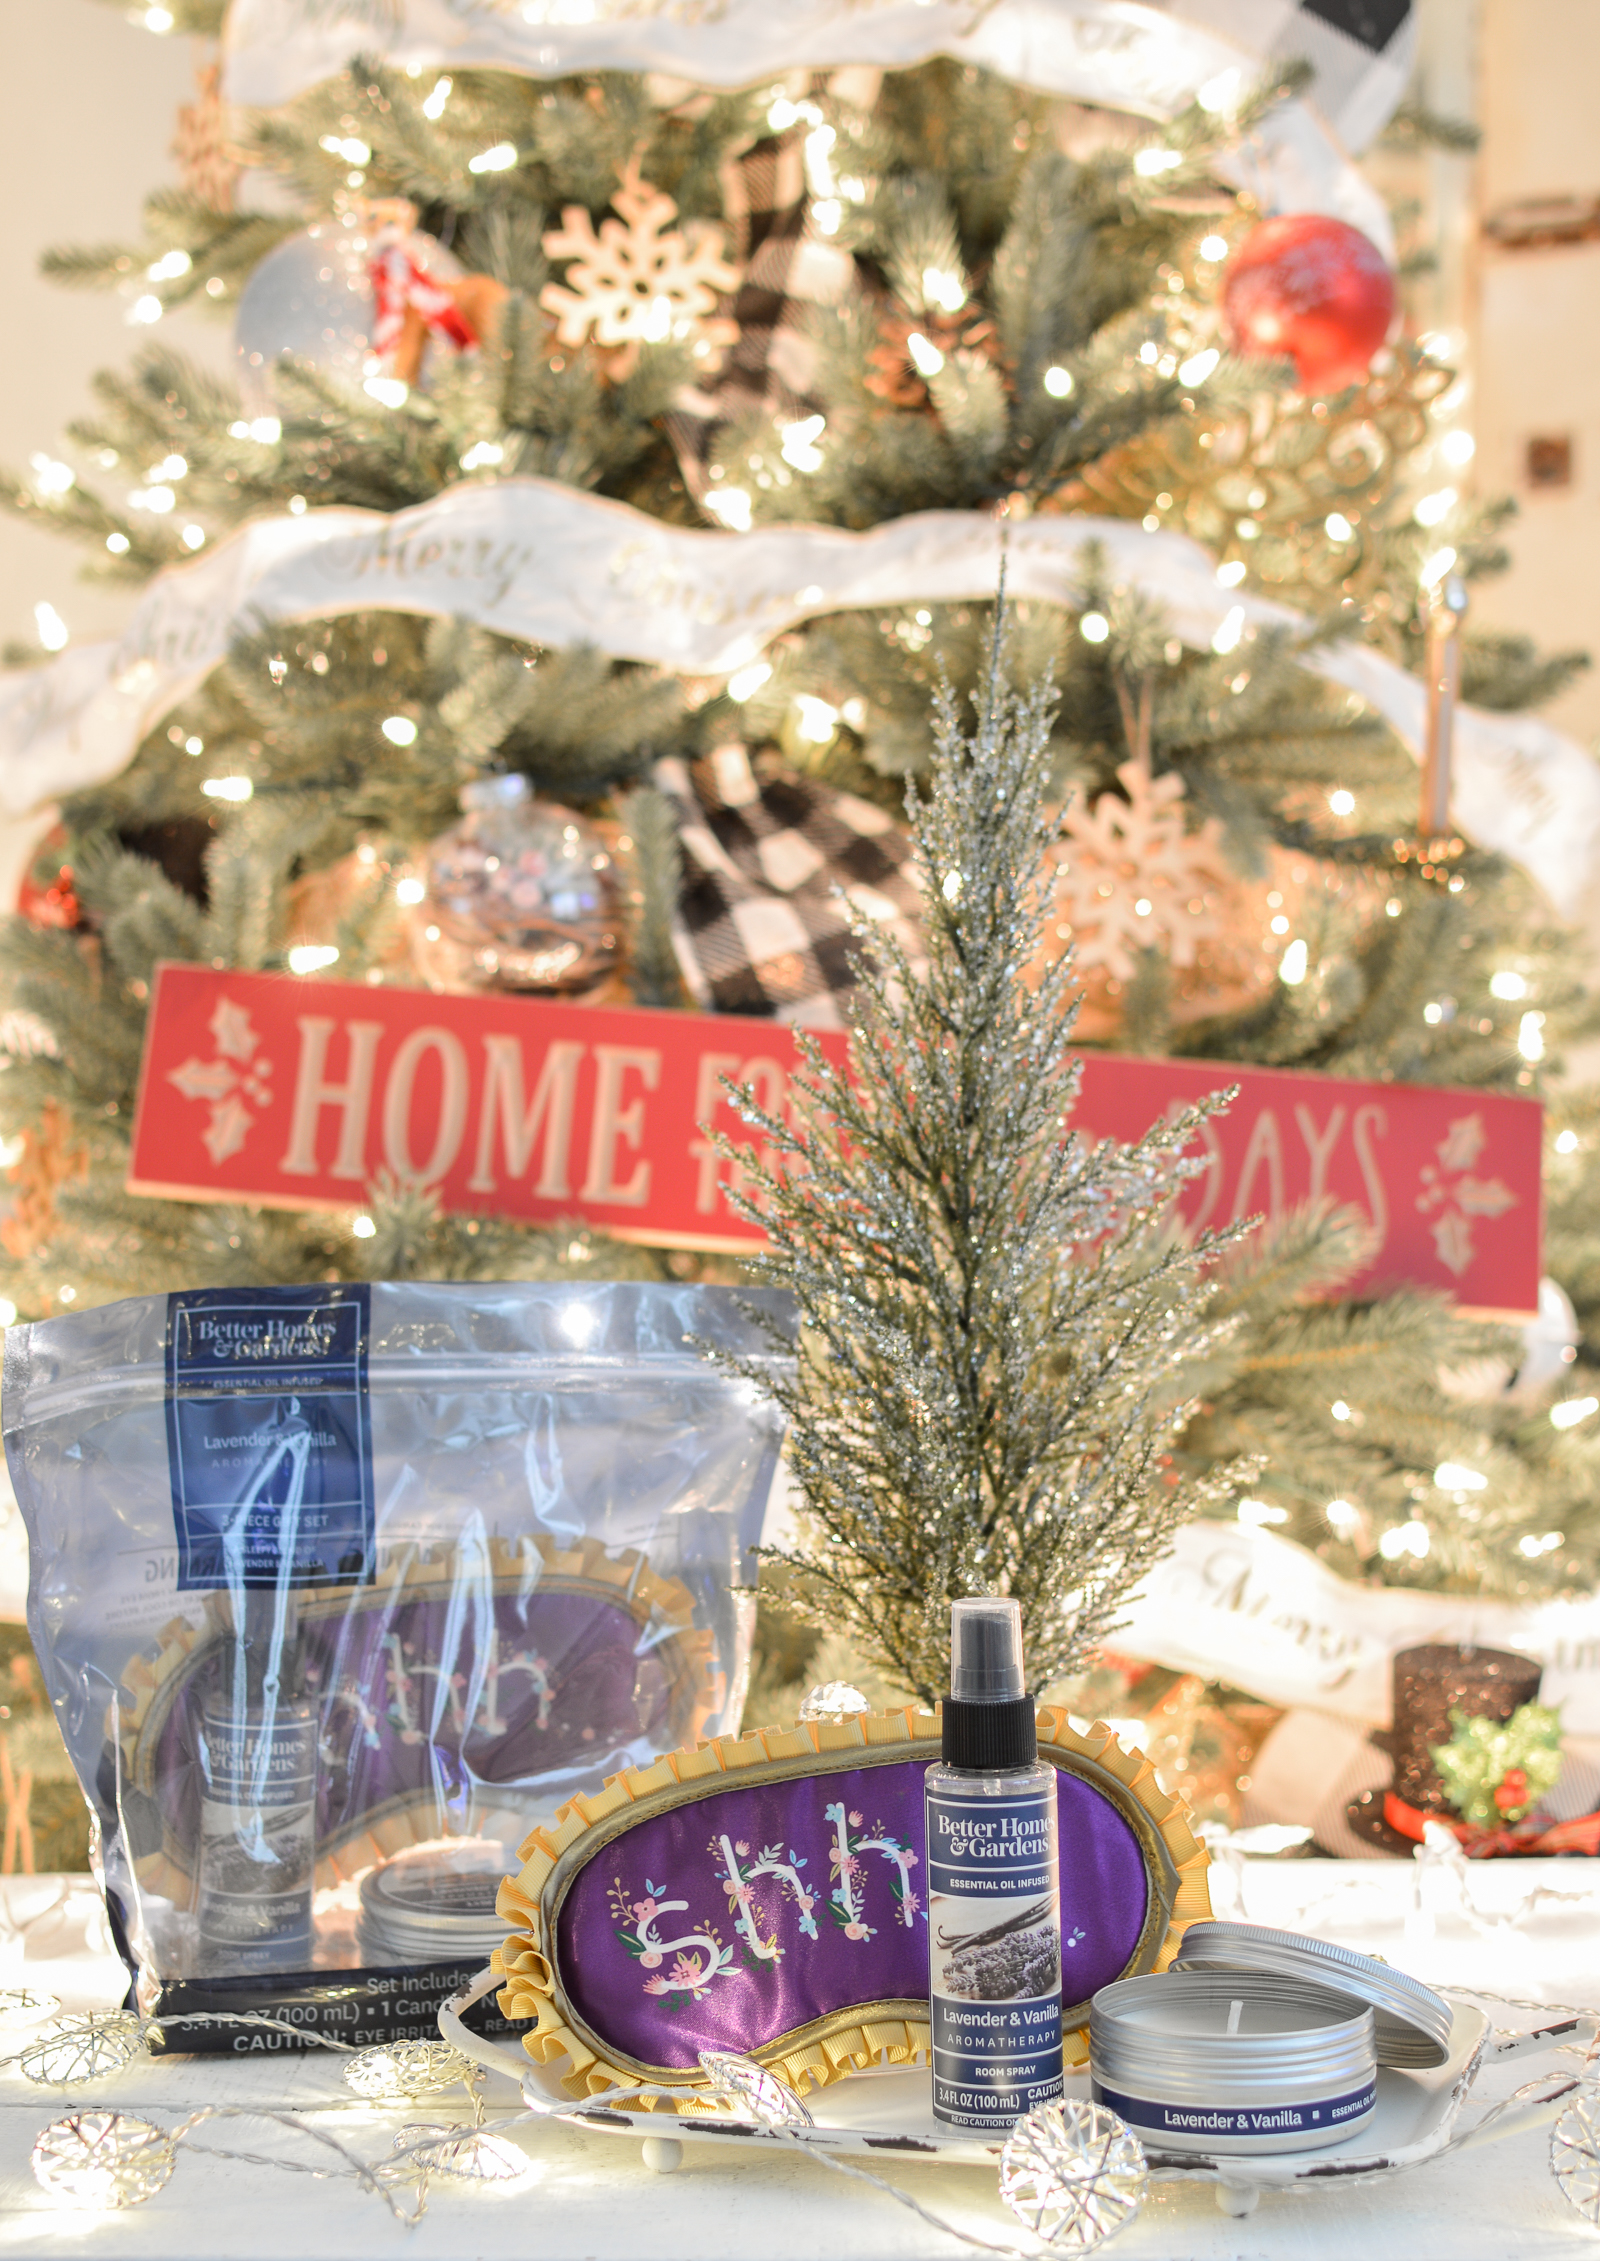 Christmas Gift Ideas Under 10.Cute Christmas Gift Ideas Under 25 With Better Homes